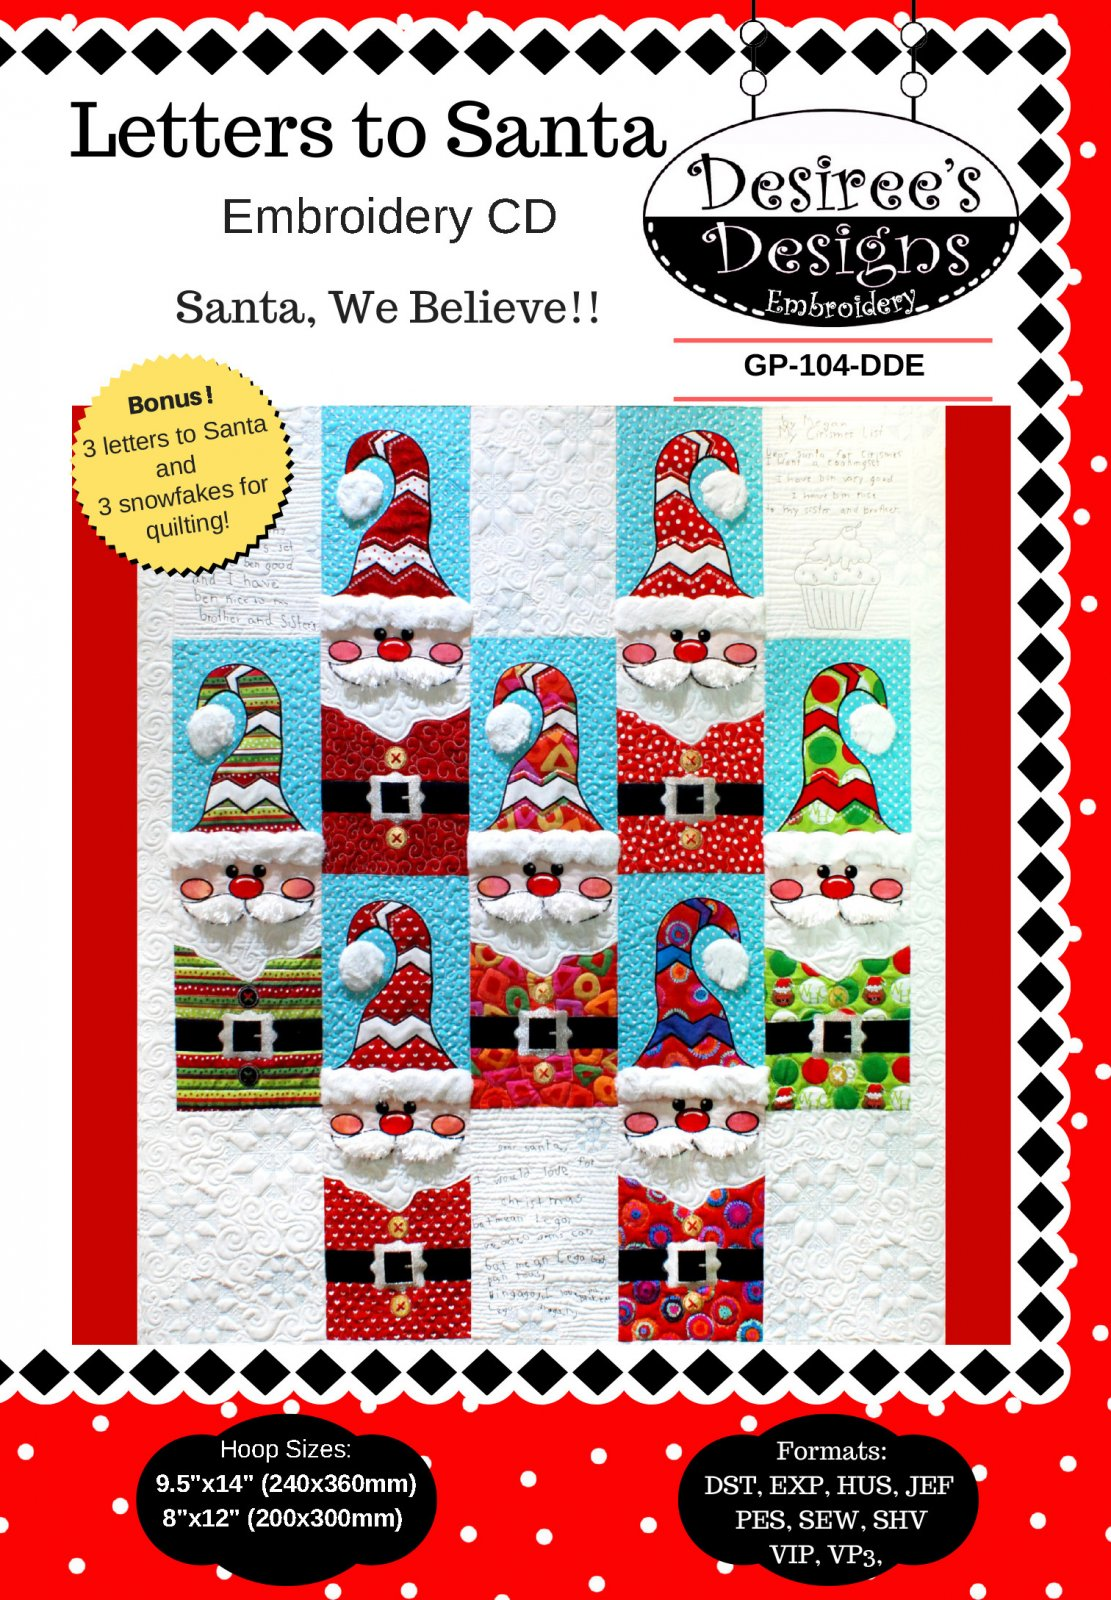 Letters to Santa Embroidery Download- (GP-104-DDE-E)